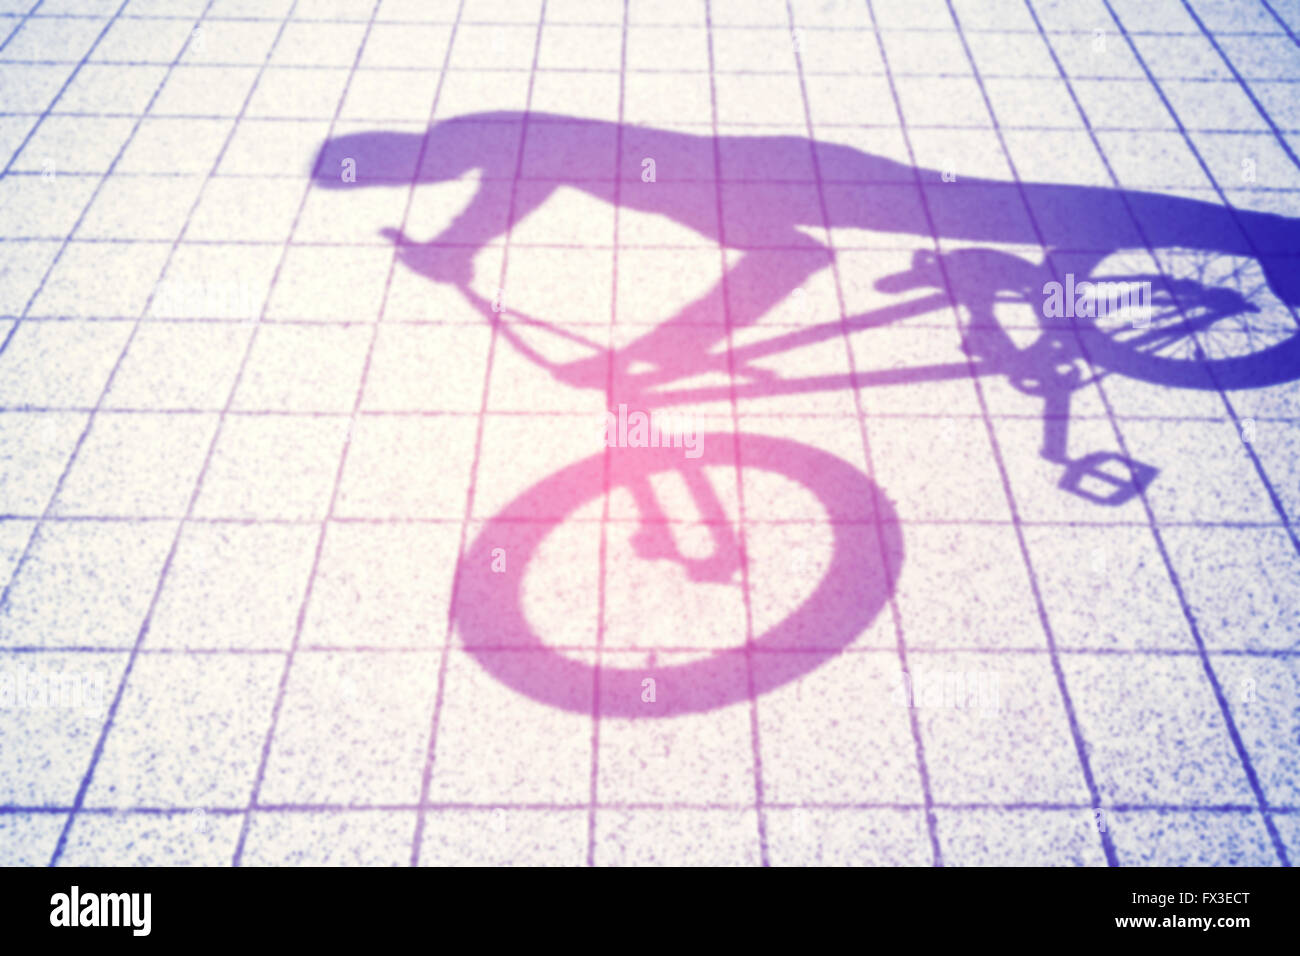 Bmx Bike Stockfotos & Bmx Bike Bilder - Alamy